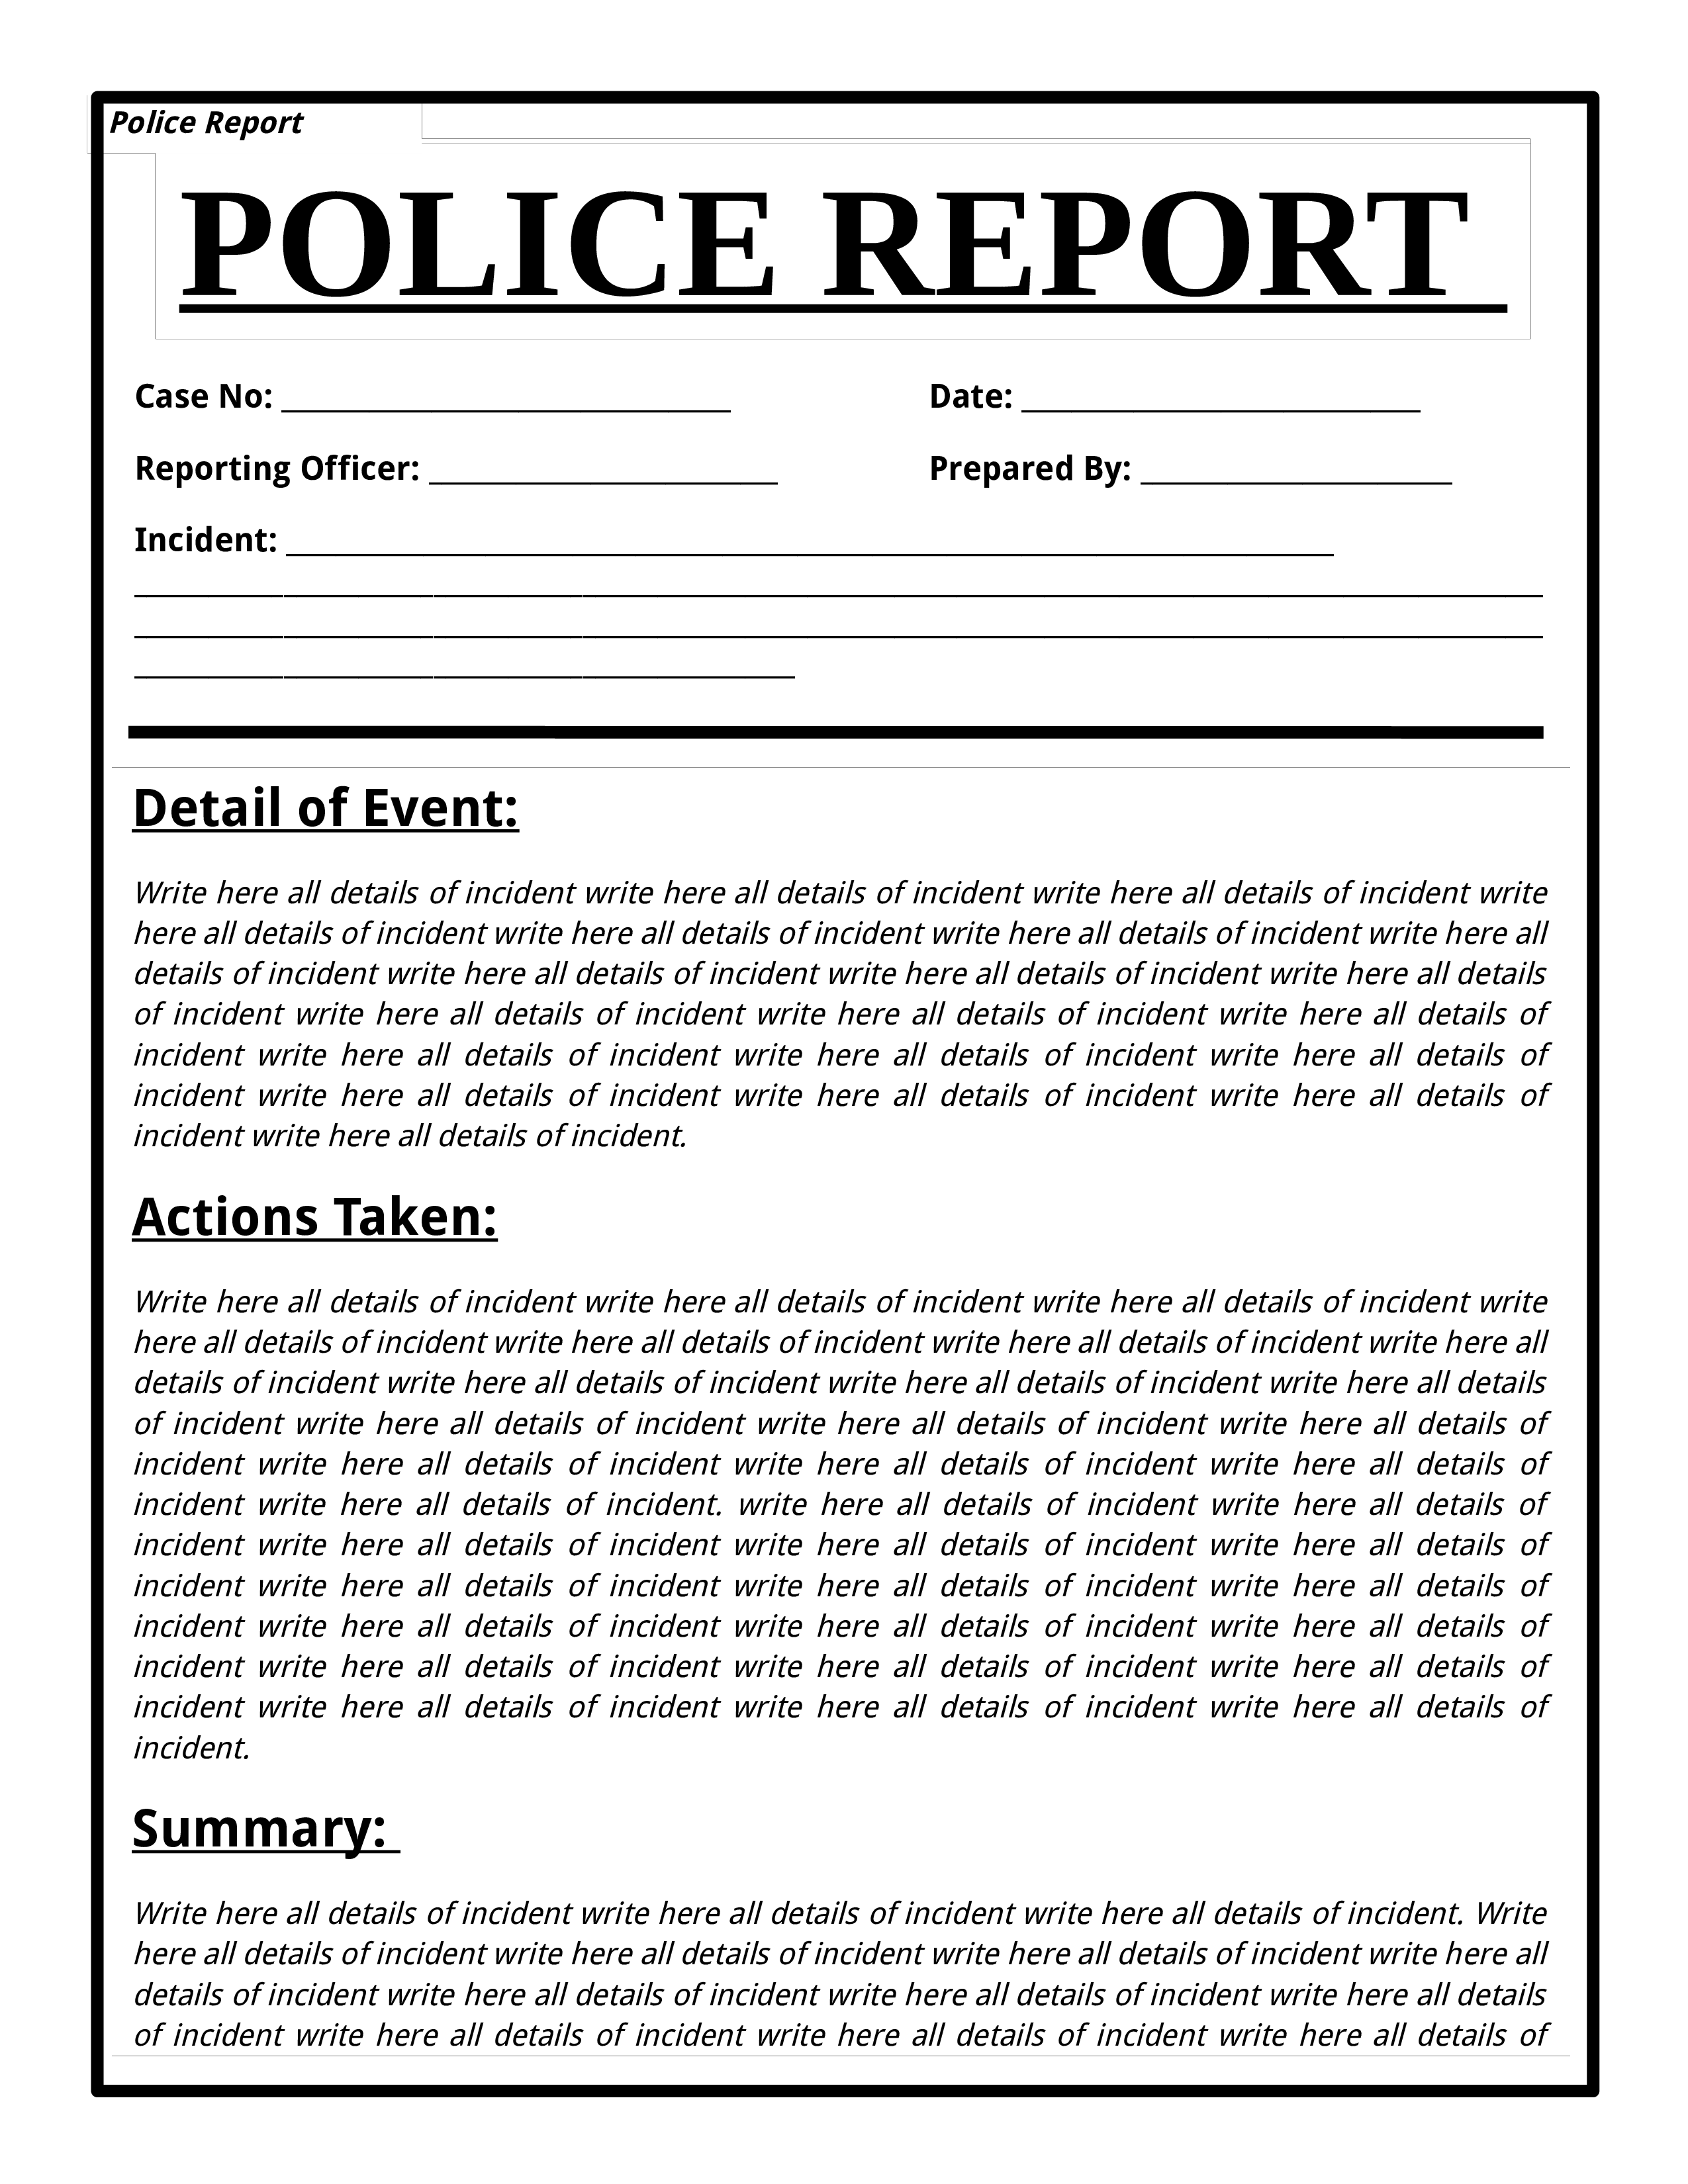 Free Police Report Template main image